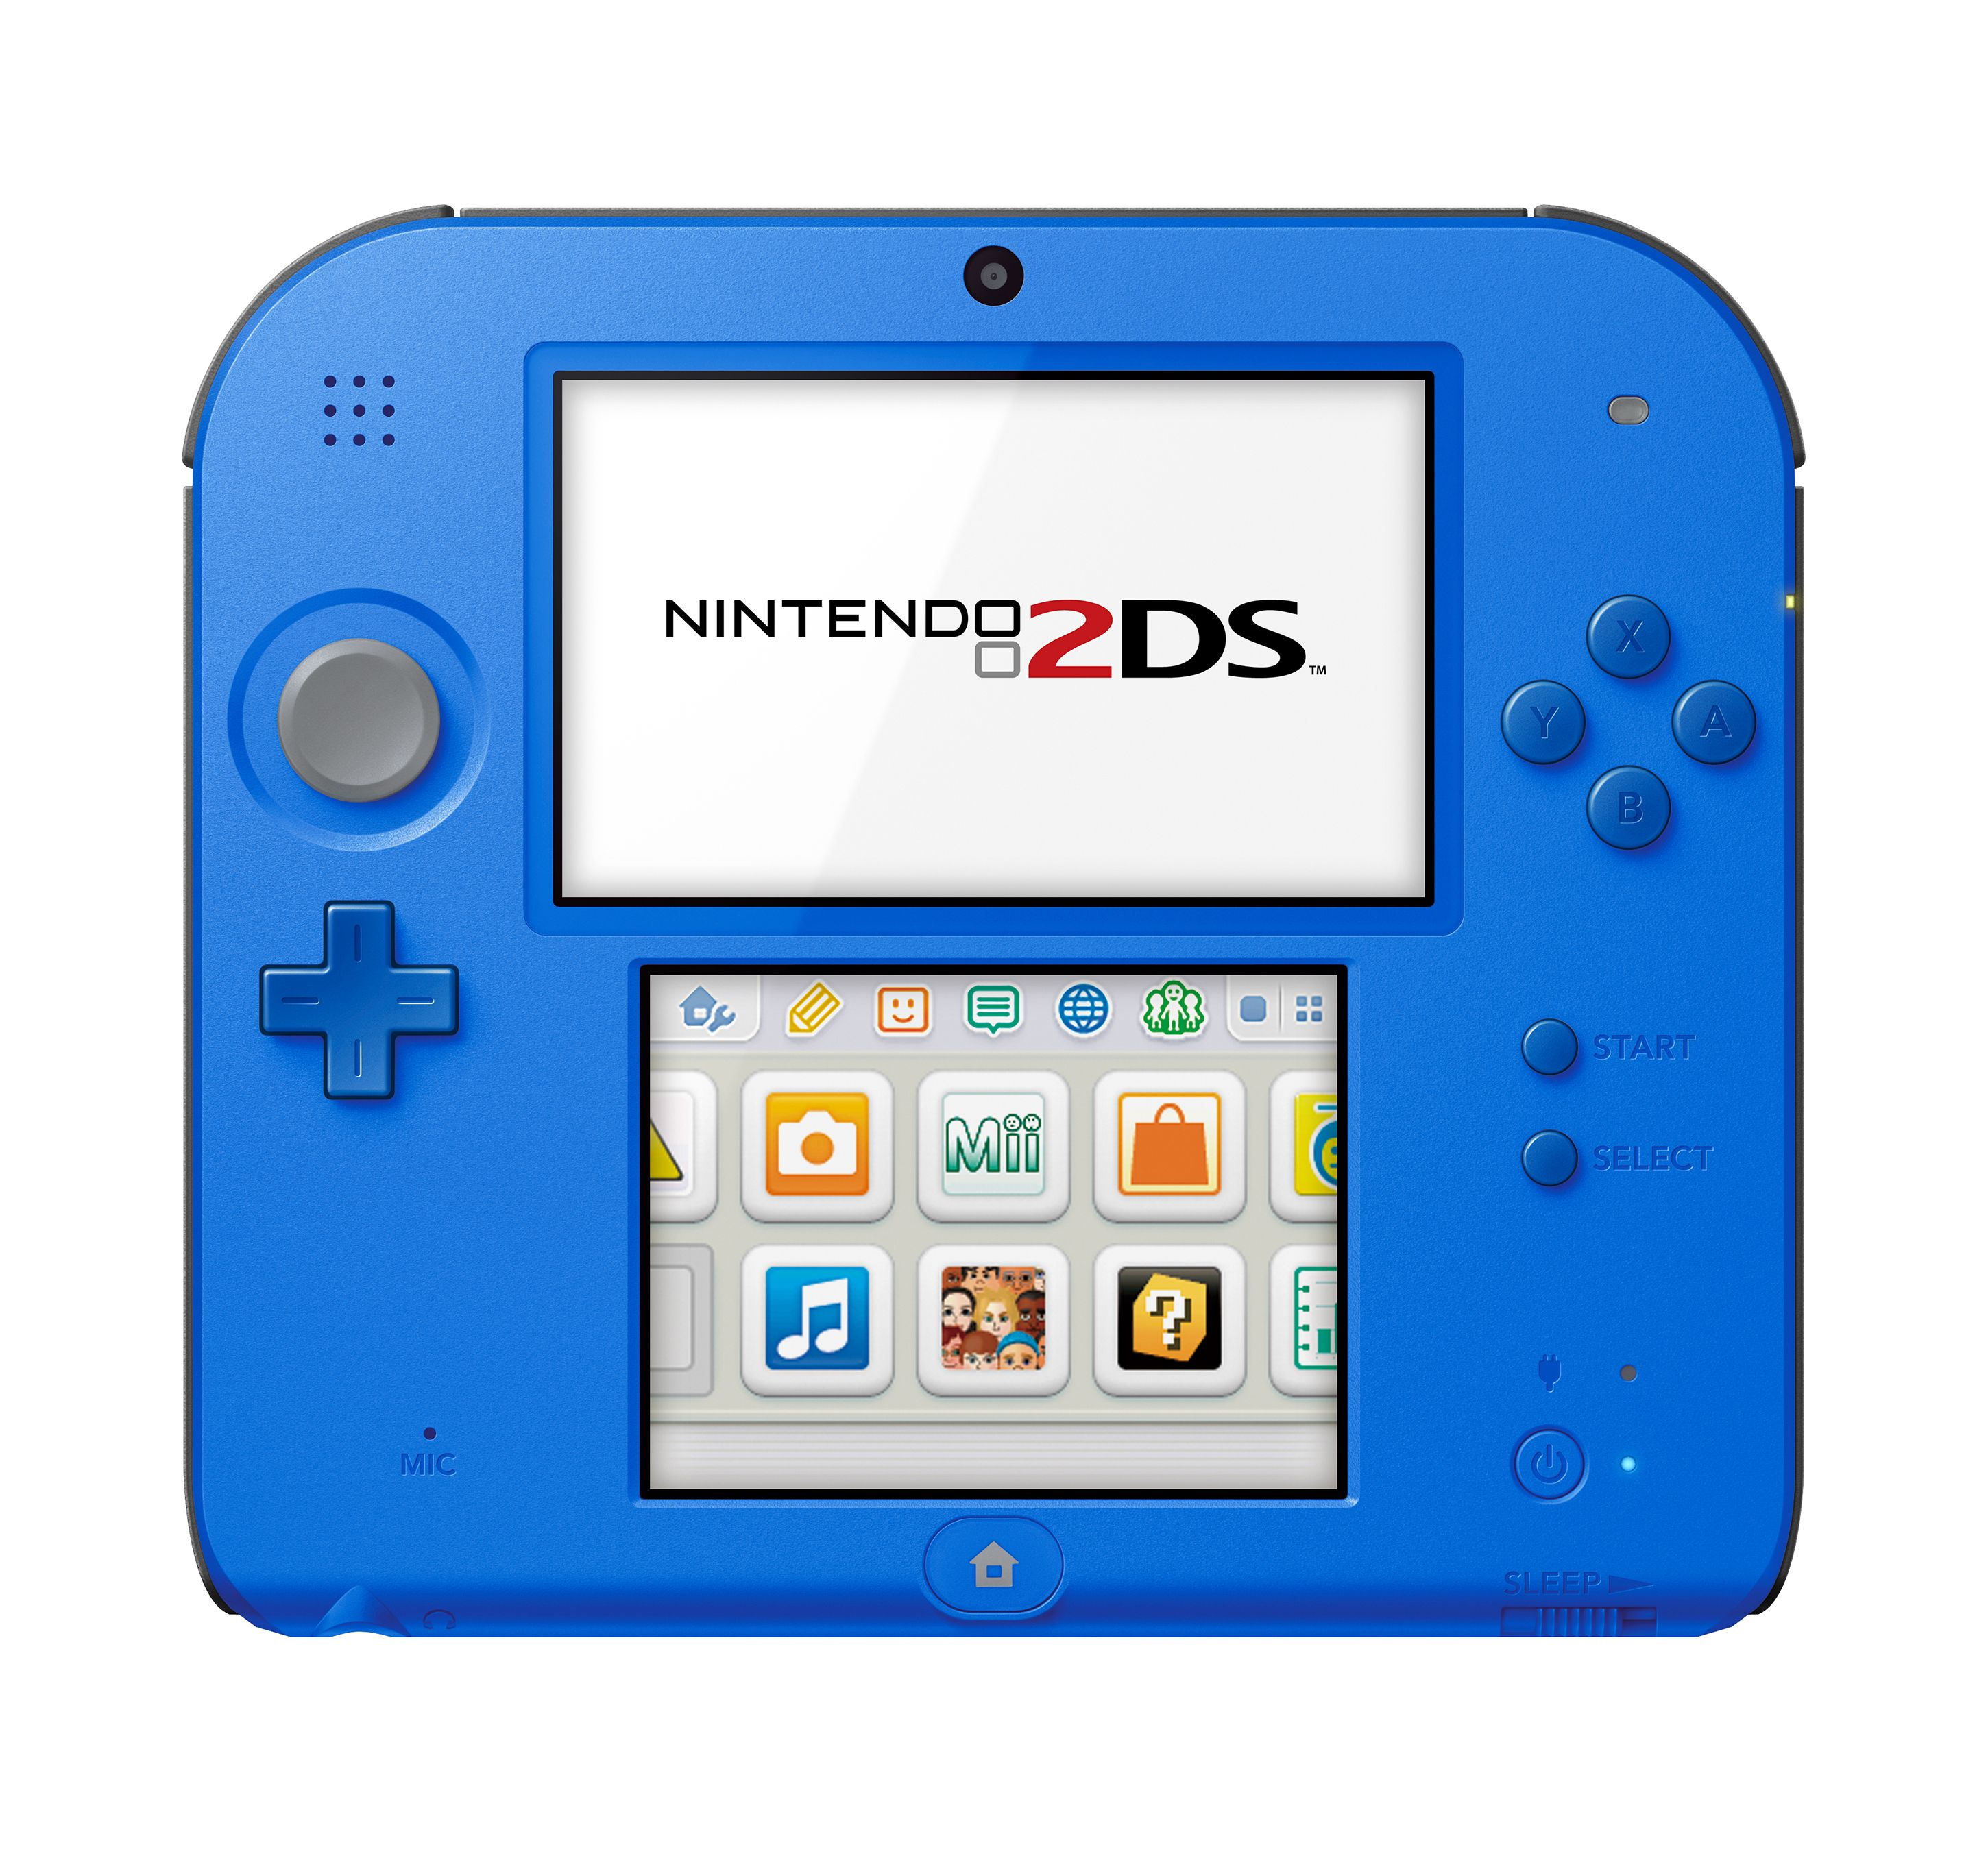 Nintendo 2DS System with New Super Mario 2, Blue, FTRSBCDV by Nintendo